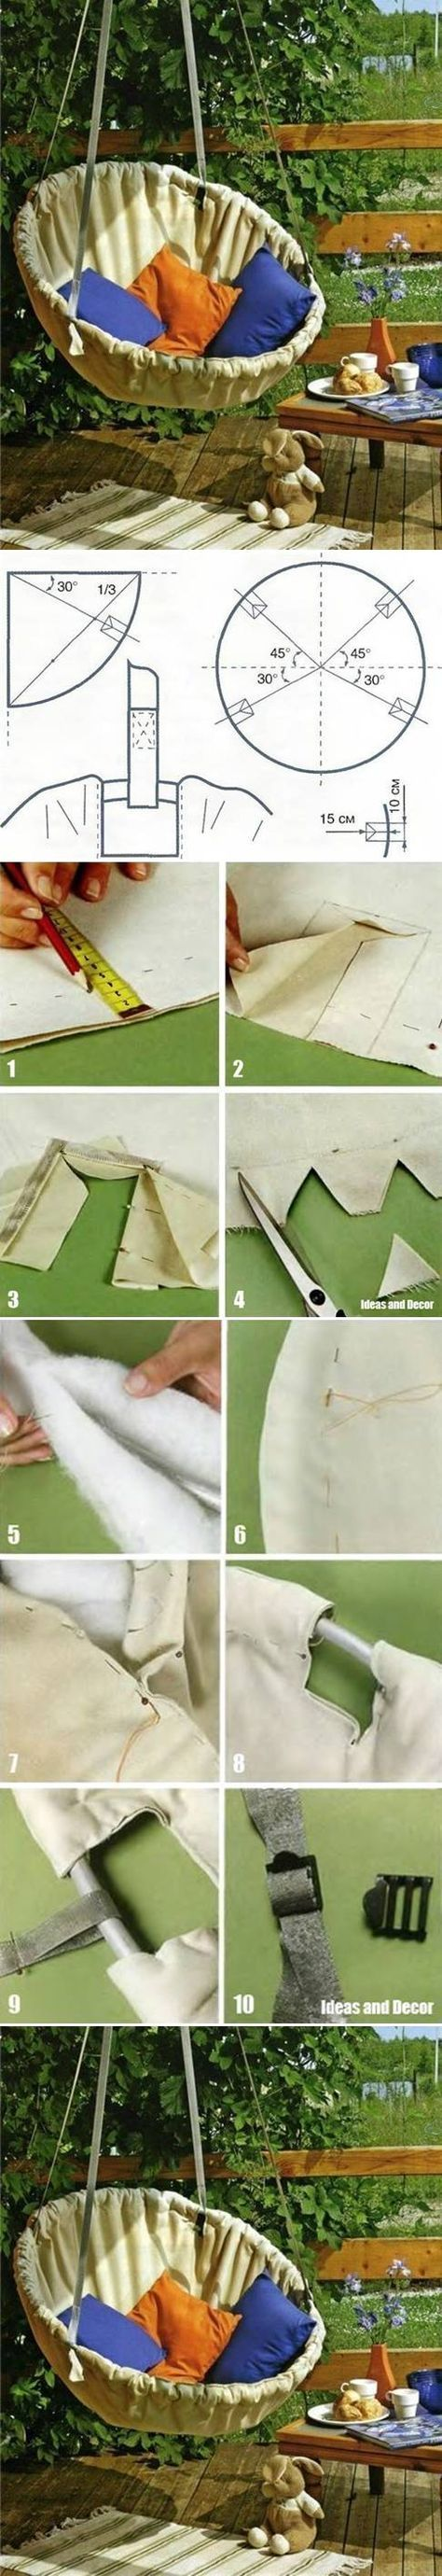 How To Make Hammock Chair Step By Step DIY Tutorial Instructions How To Make  Hammock Chair